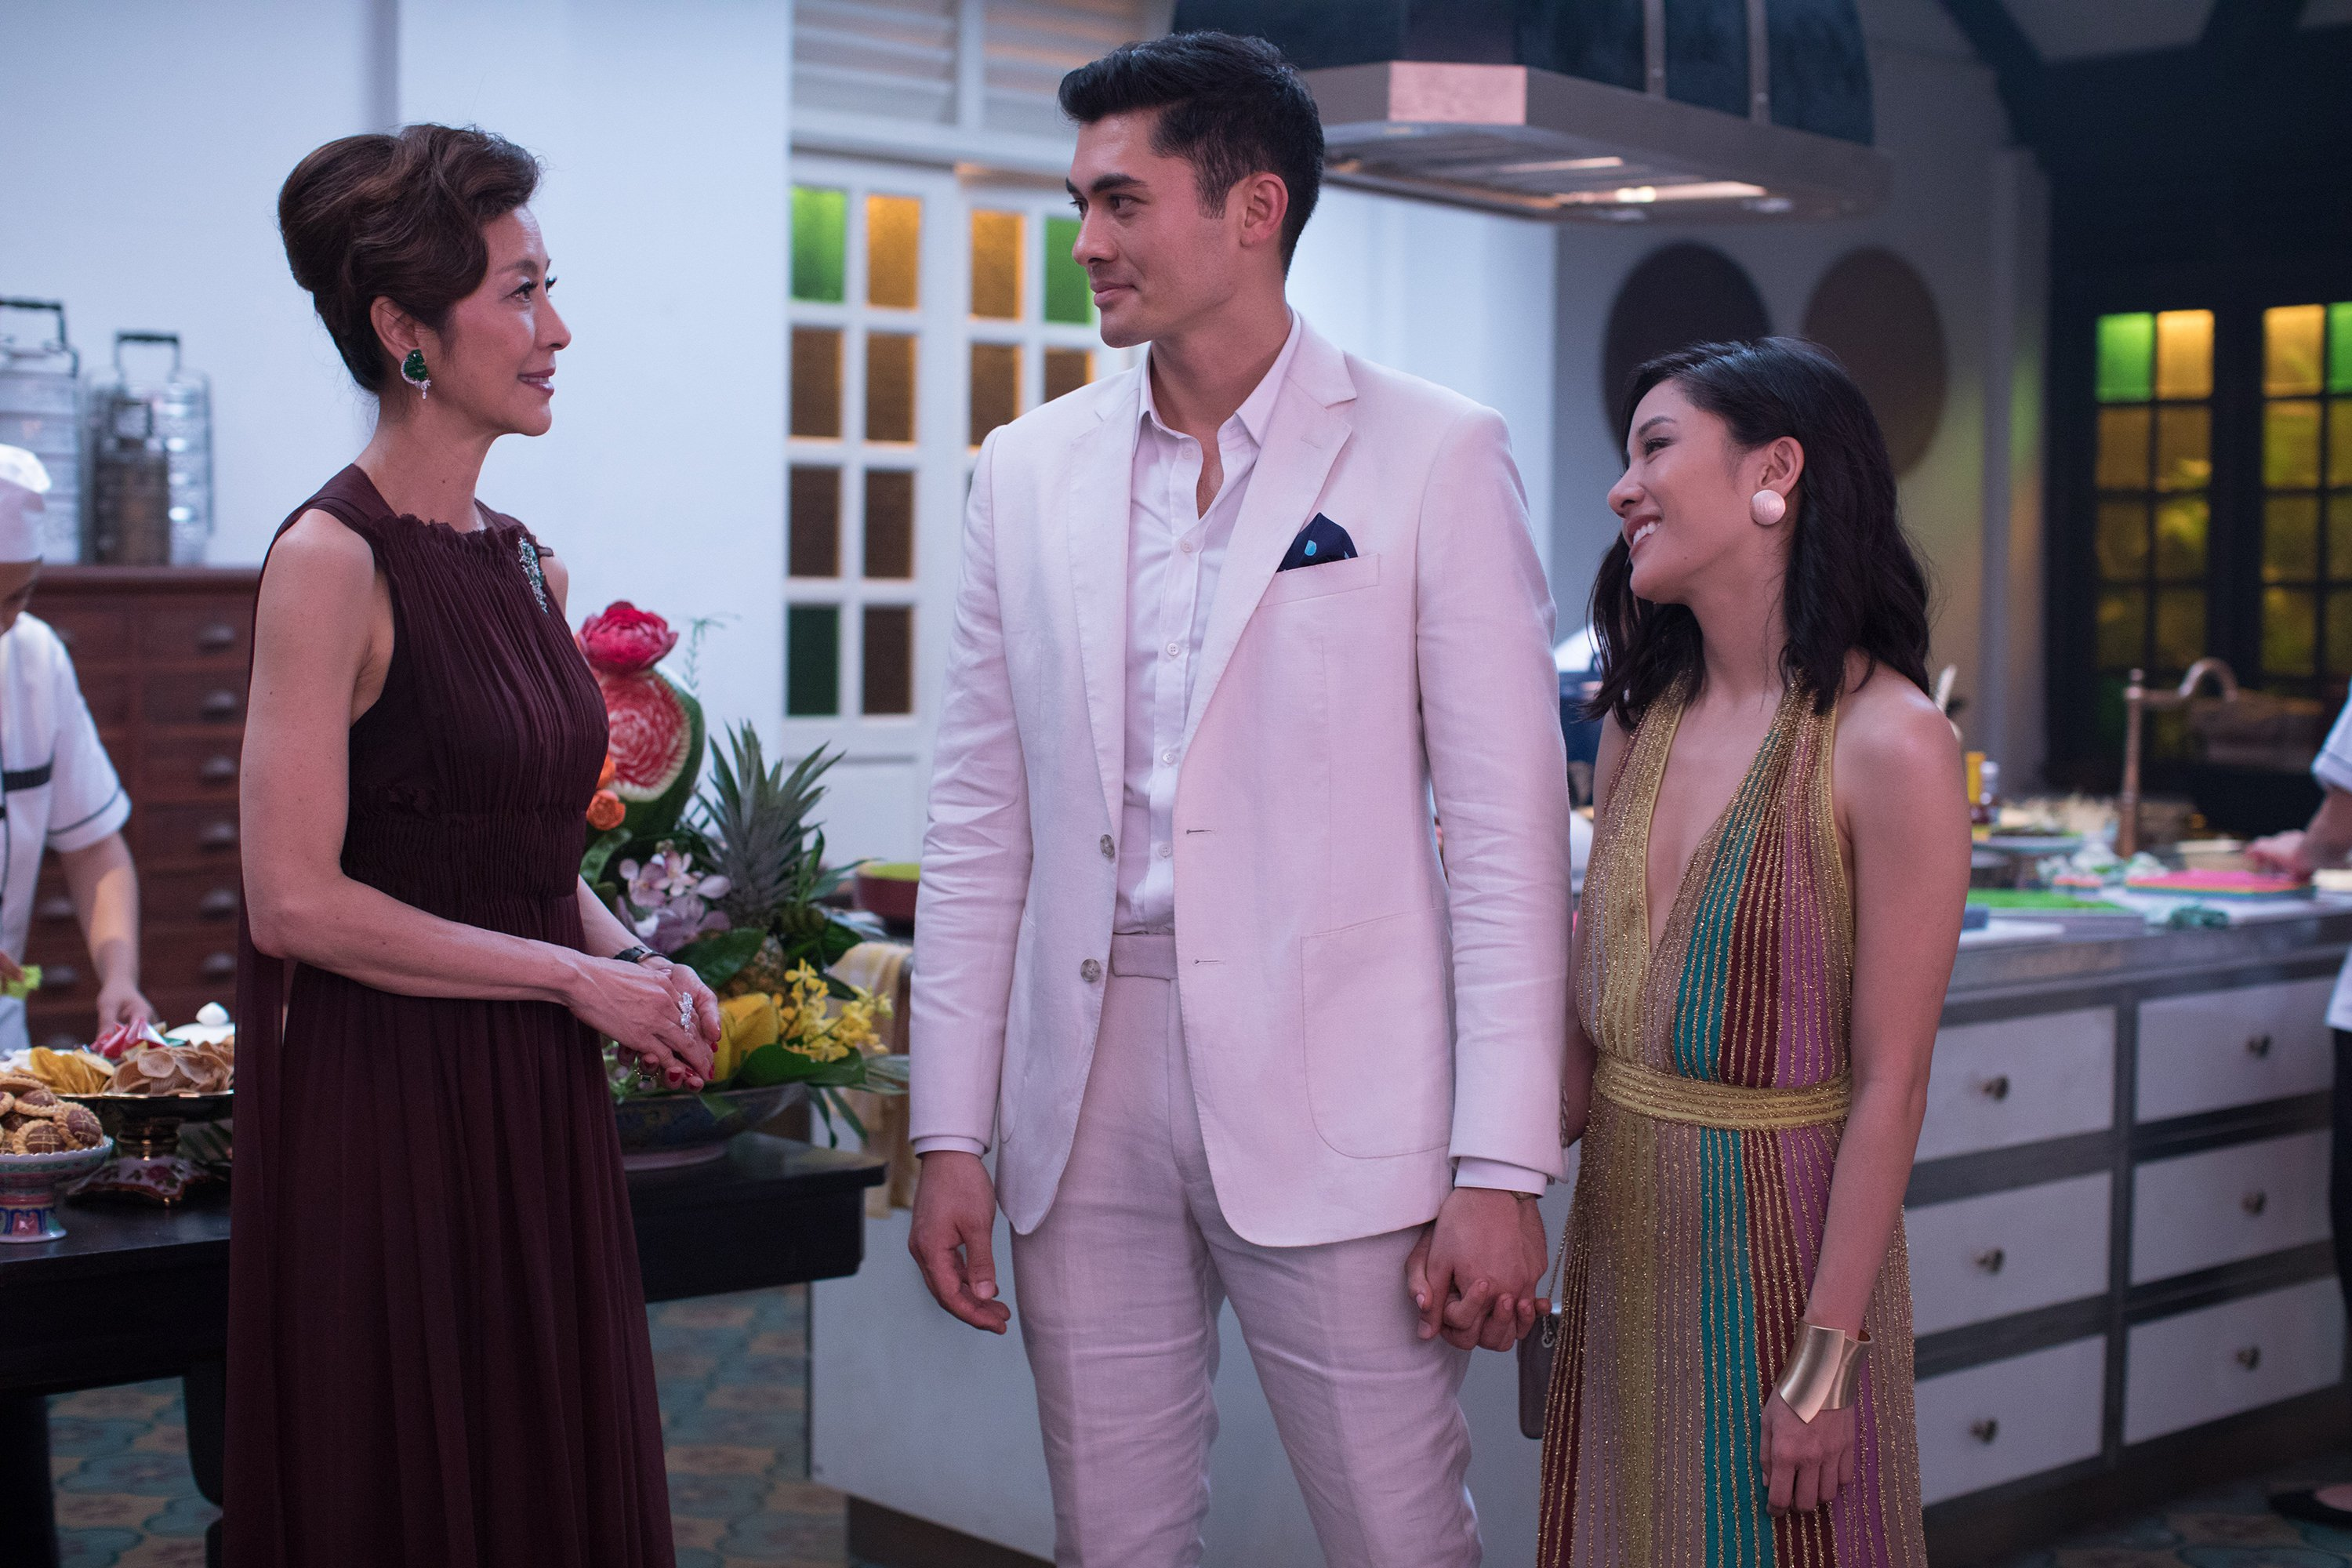 Michelle Yeoh, Henry Golding and Constance Wu in the film.